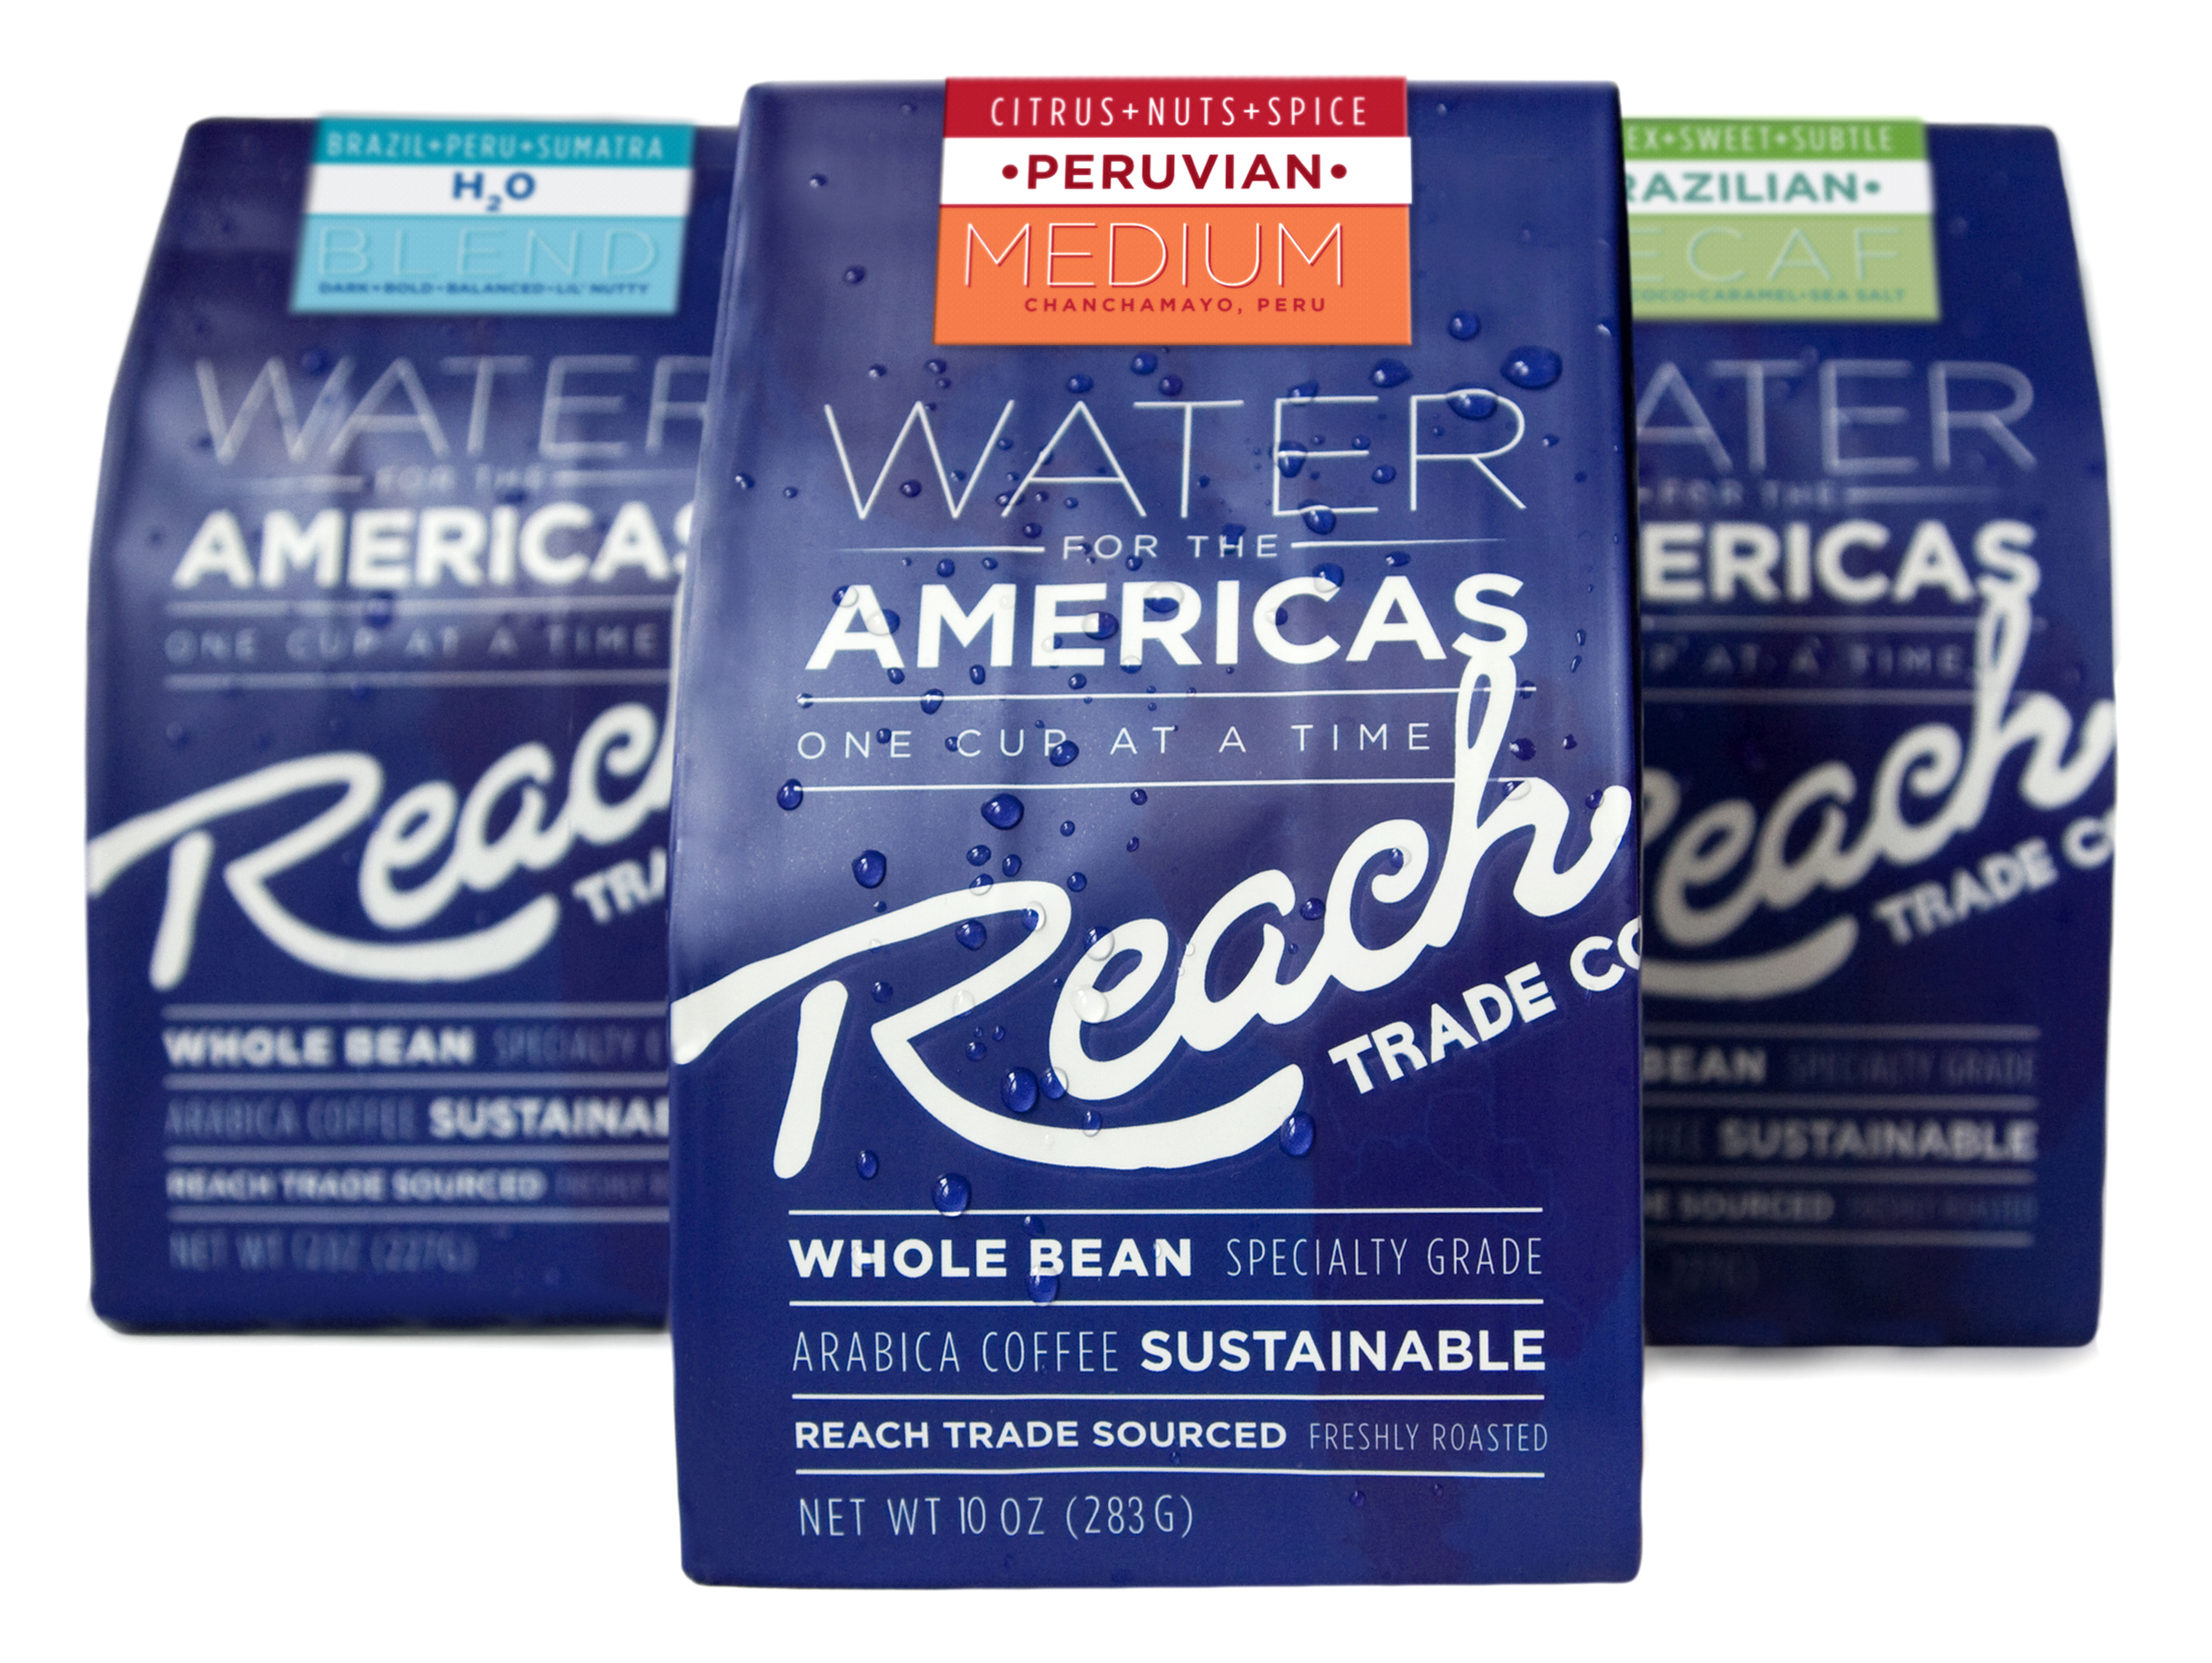 Water for the Americas coffee packaging